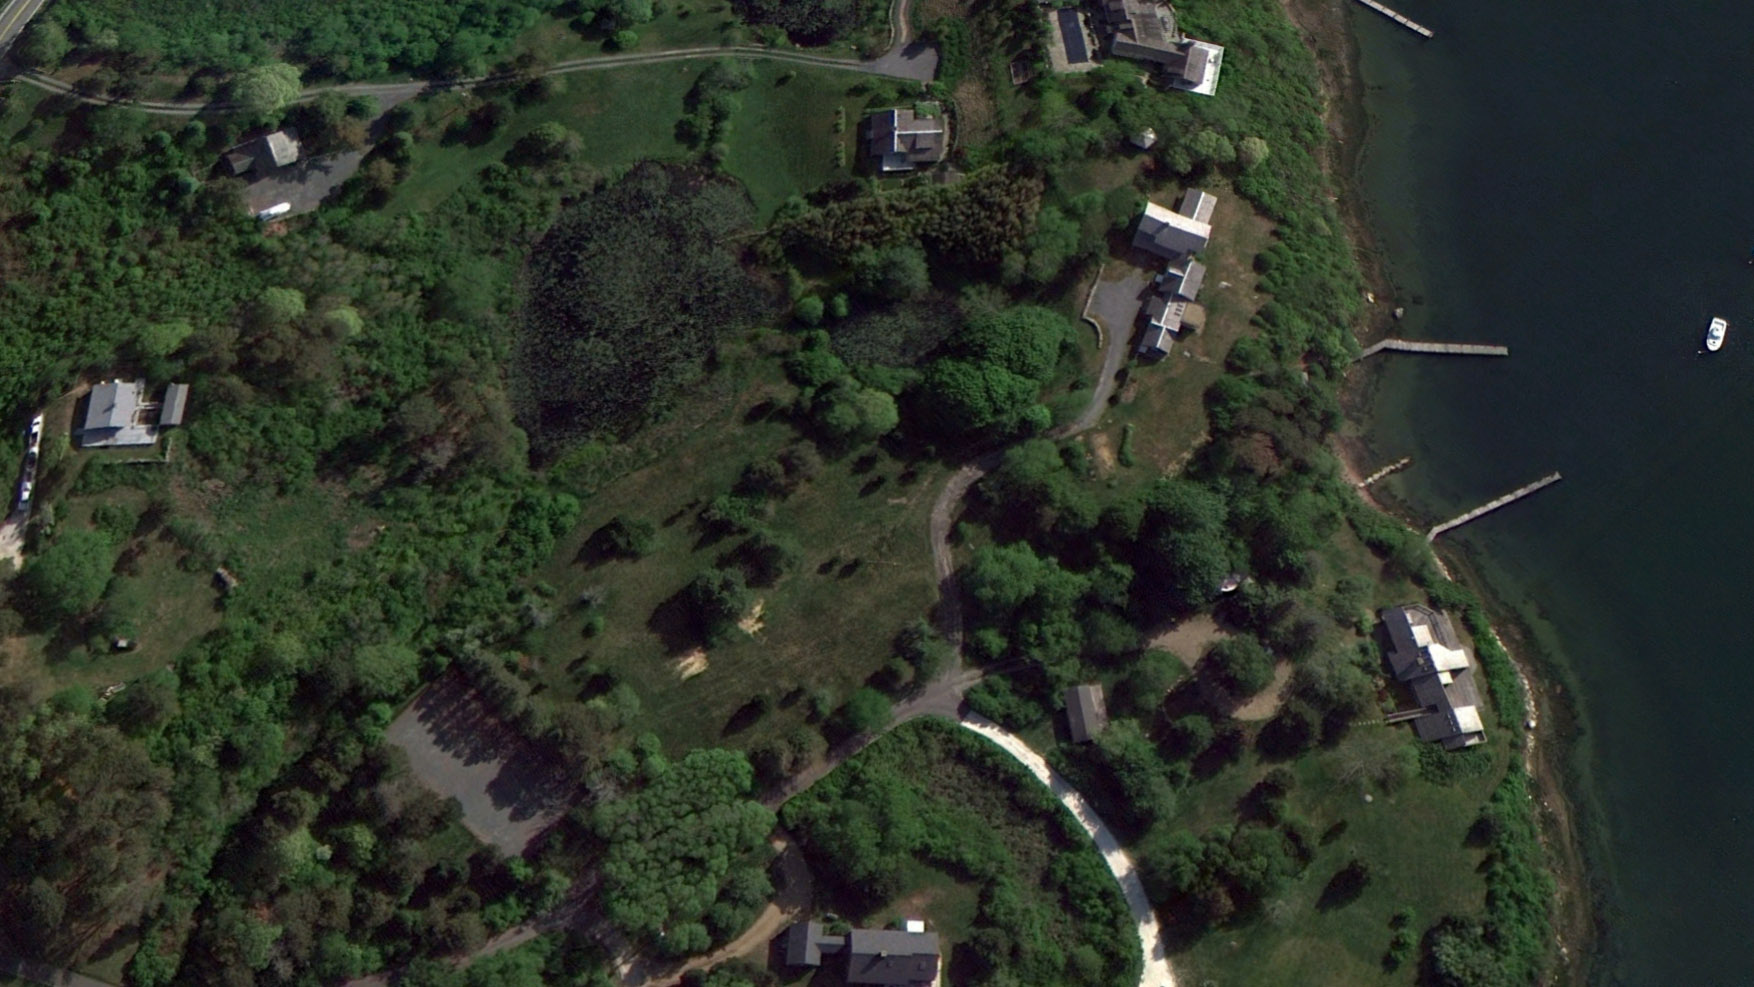 OBH_B&A_MV_Satellite_10_Zoia_House_Before--Credit_Google_Earth.jpg